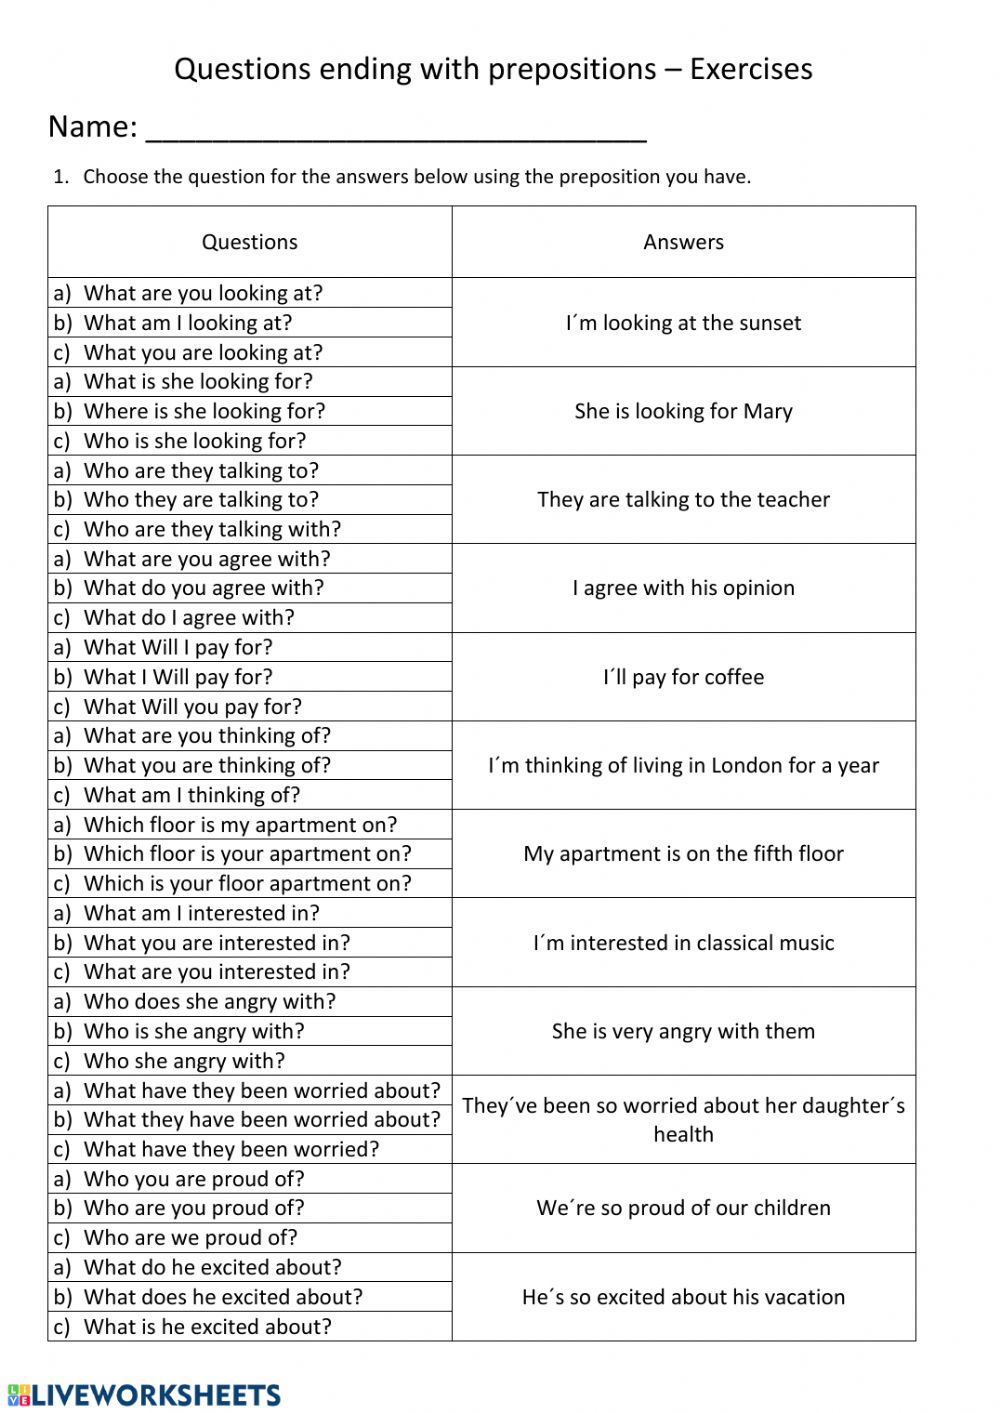 Questions Ending With Prepositions Worksheet